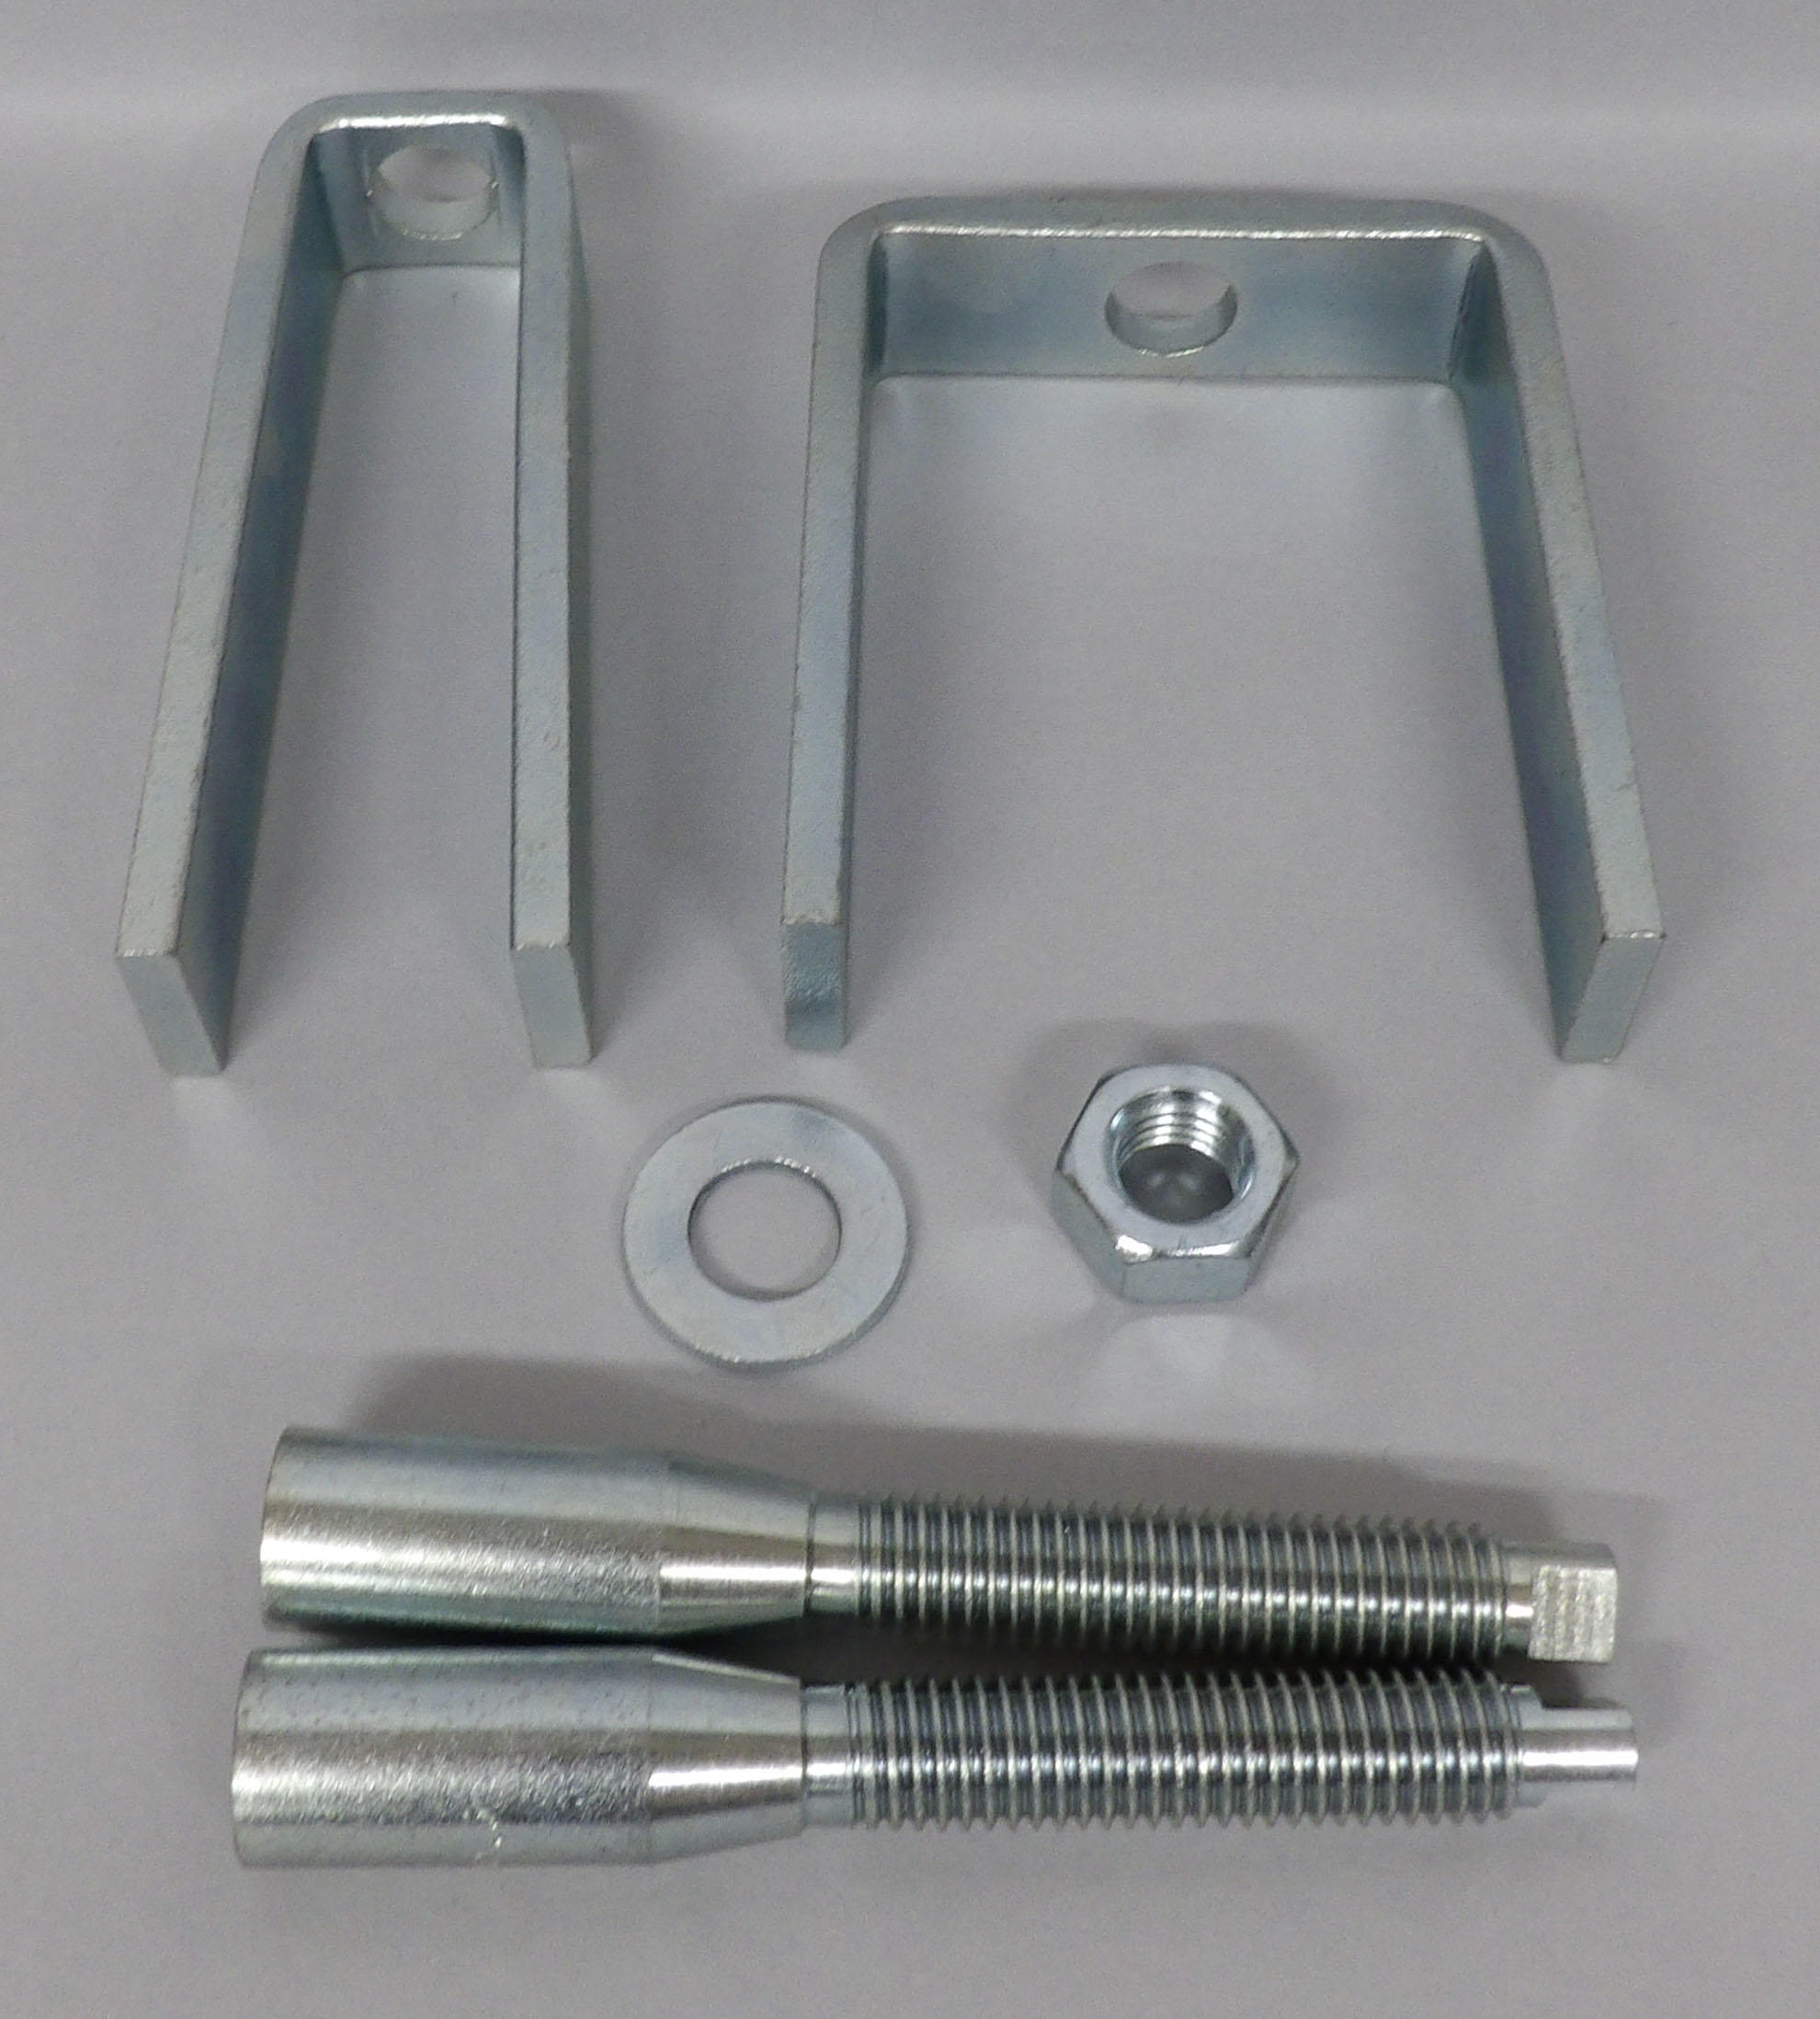 CG95B Steering Wheel Lock Plate Remover Designed for airbag equipped Saginaw steering columns. This set includes two zinc plated pullers (narrow and wide bridge), and two pressure screws: sizes 9/16